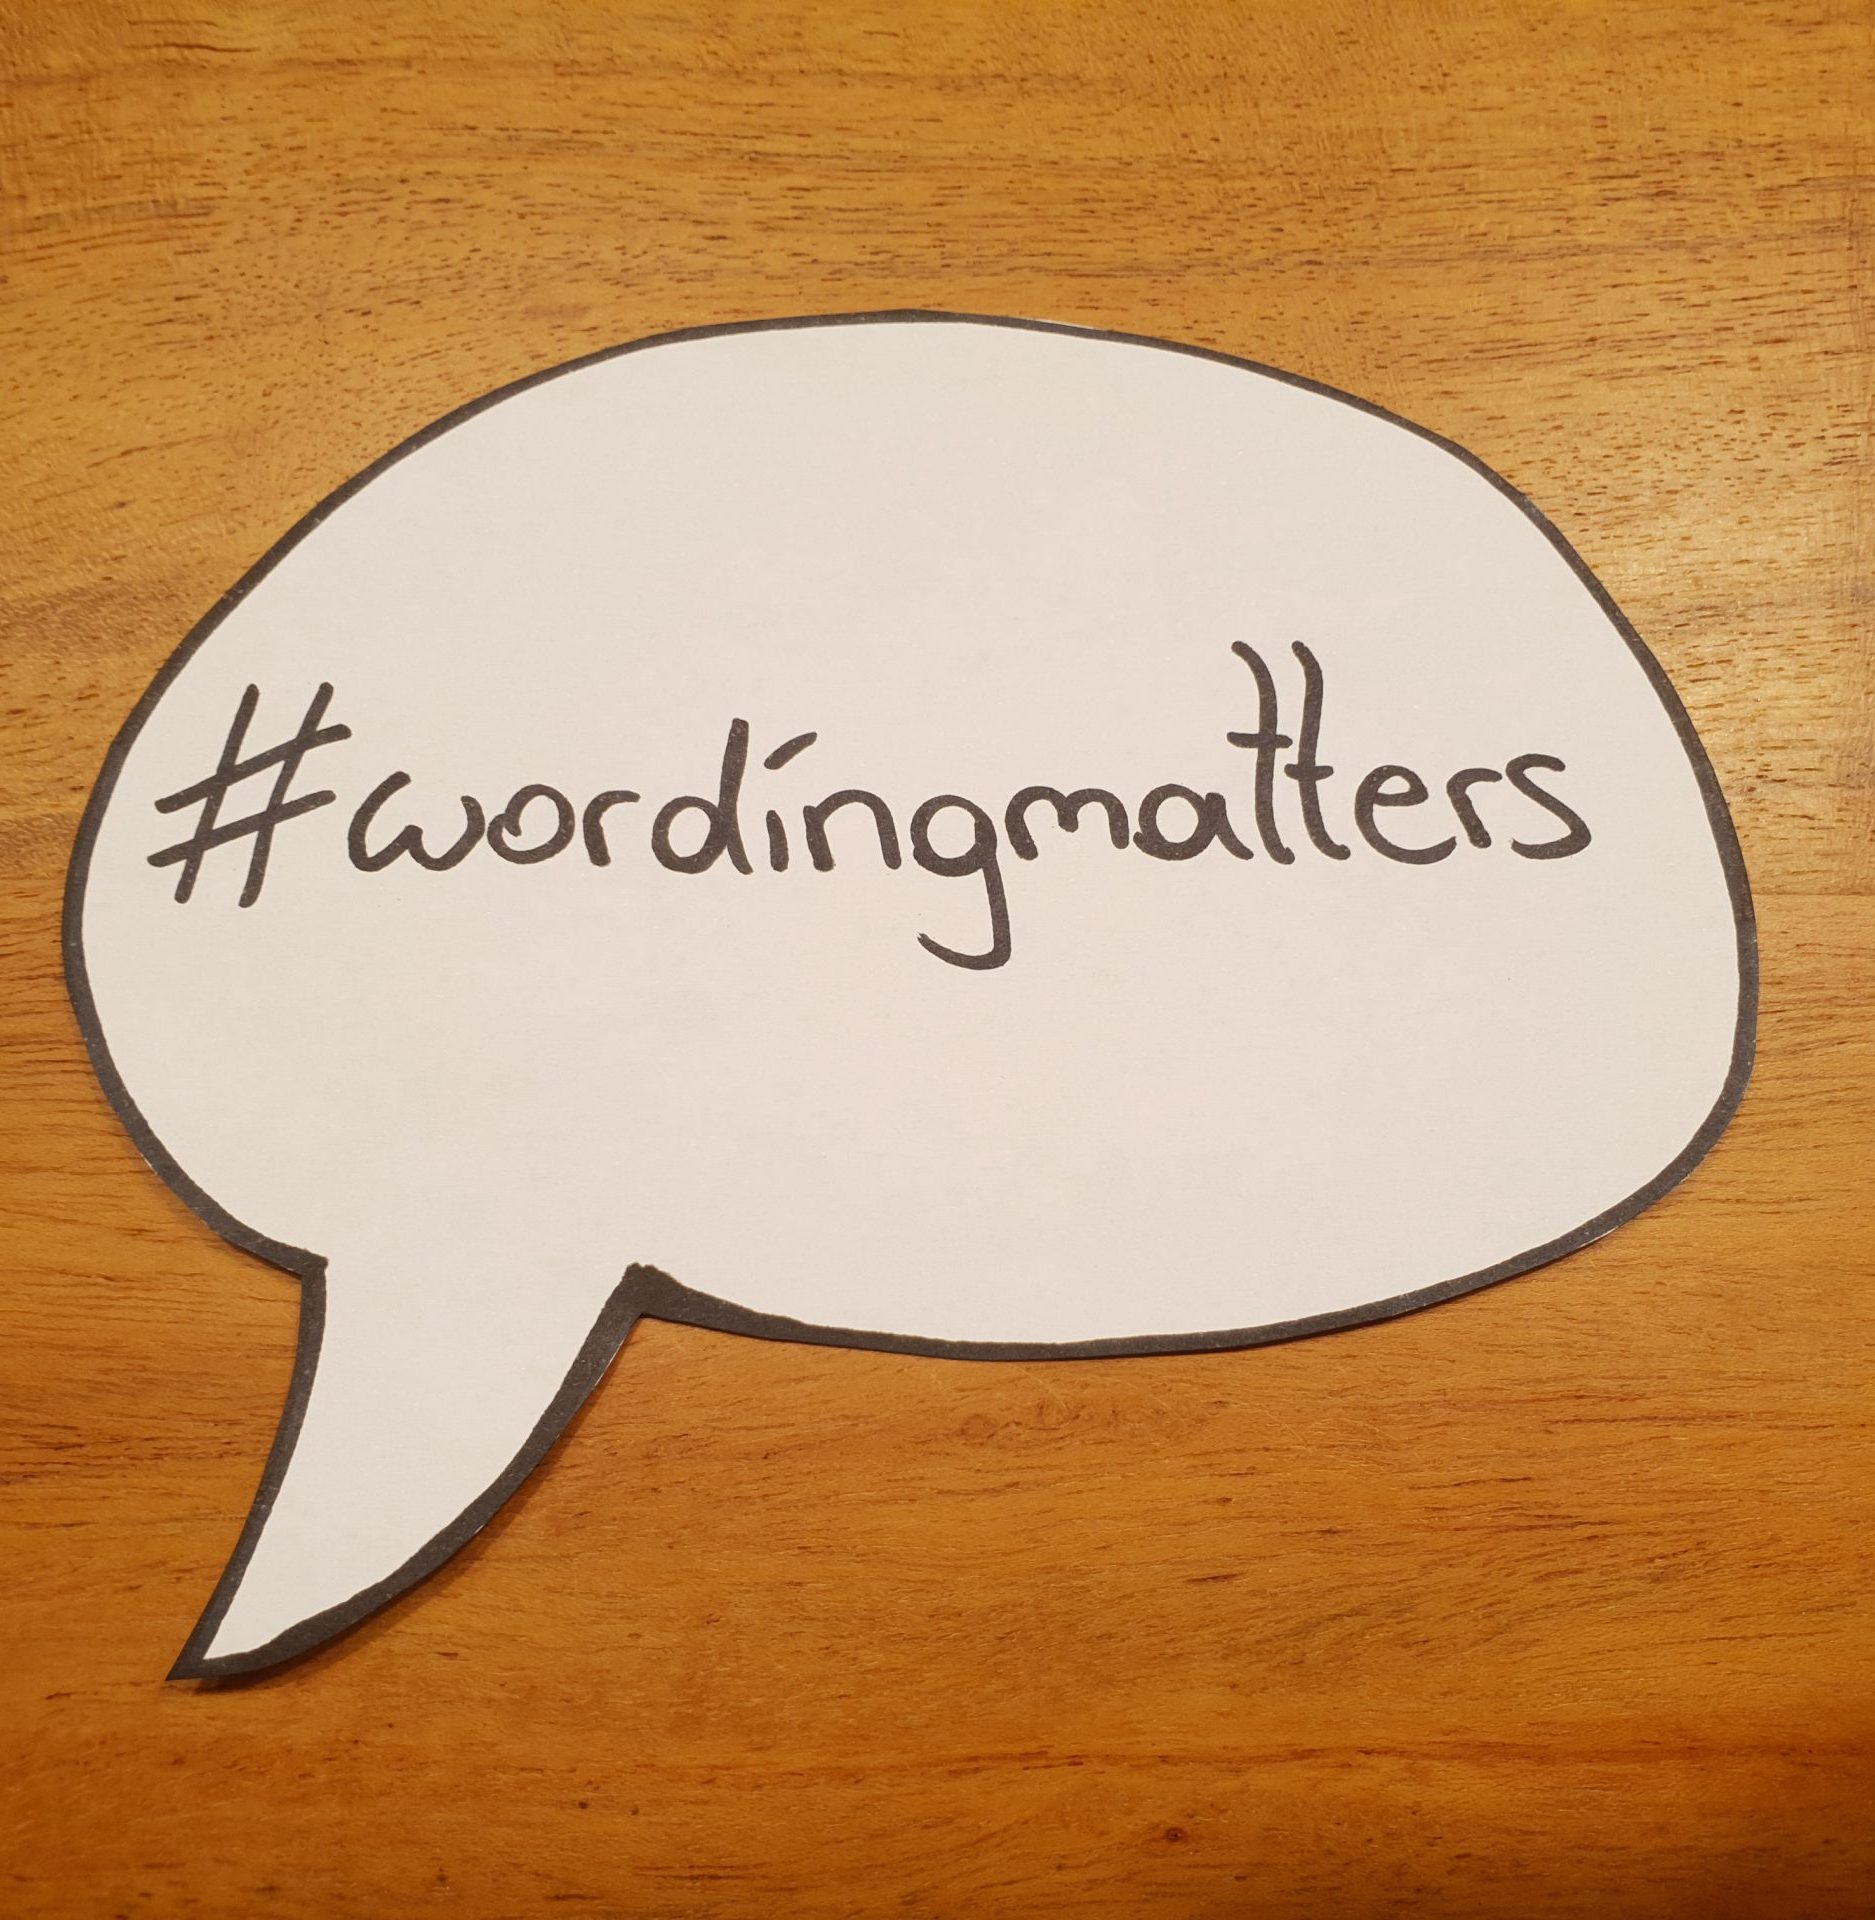 Read more about the article #wordingmatters